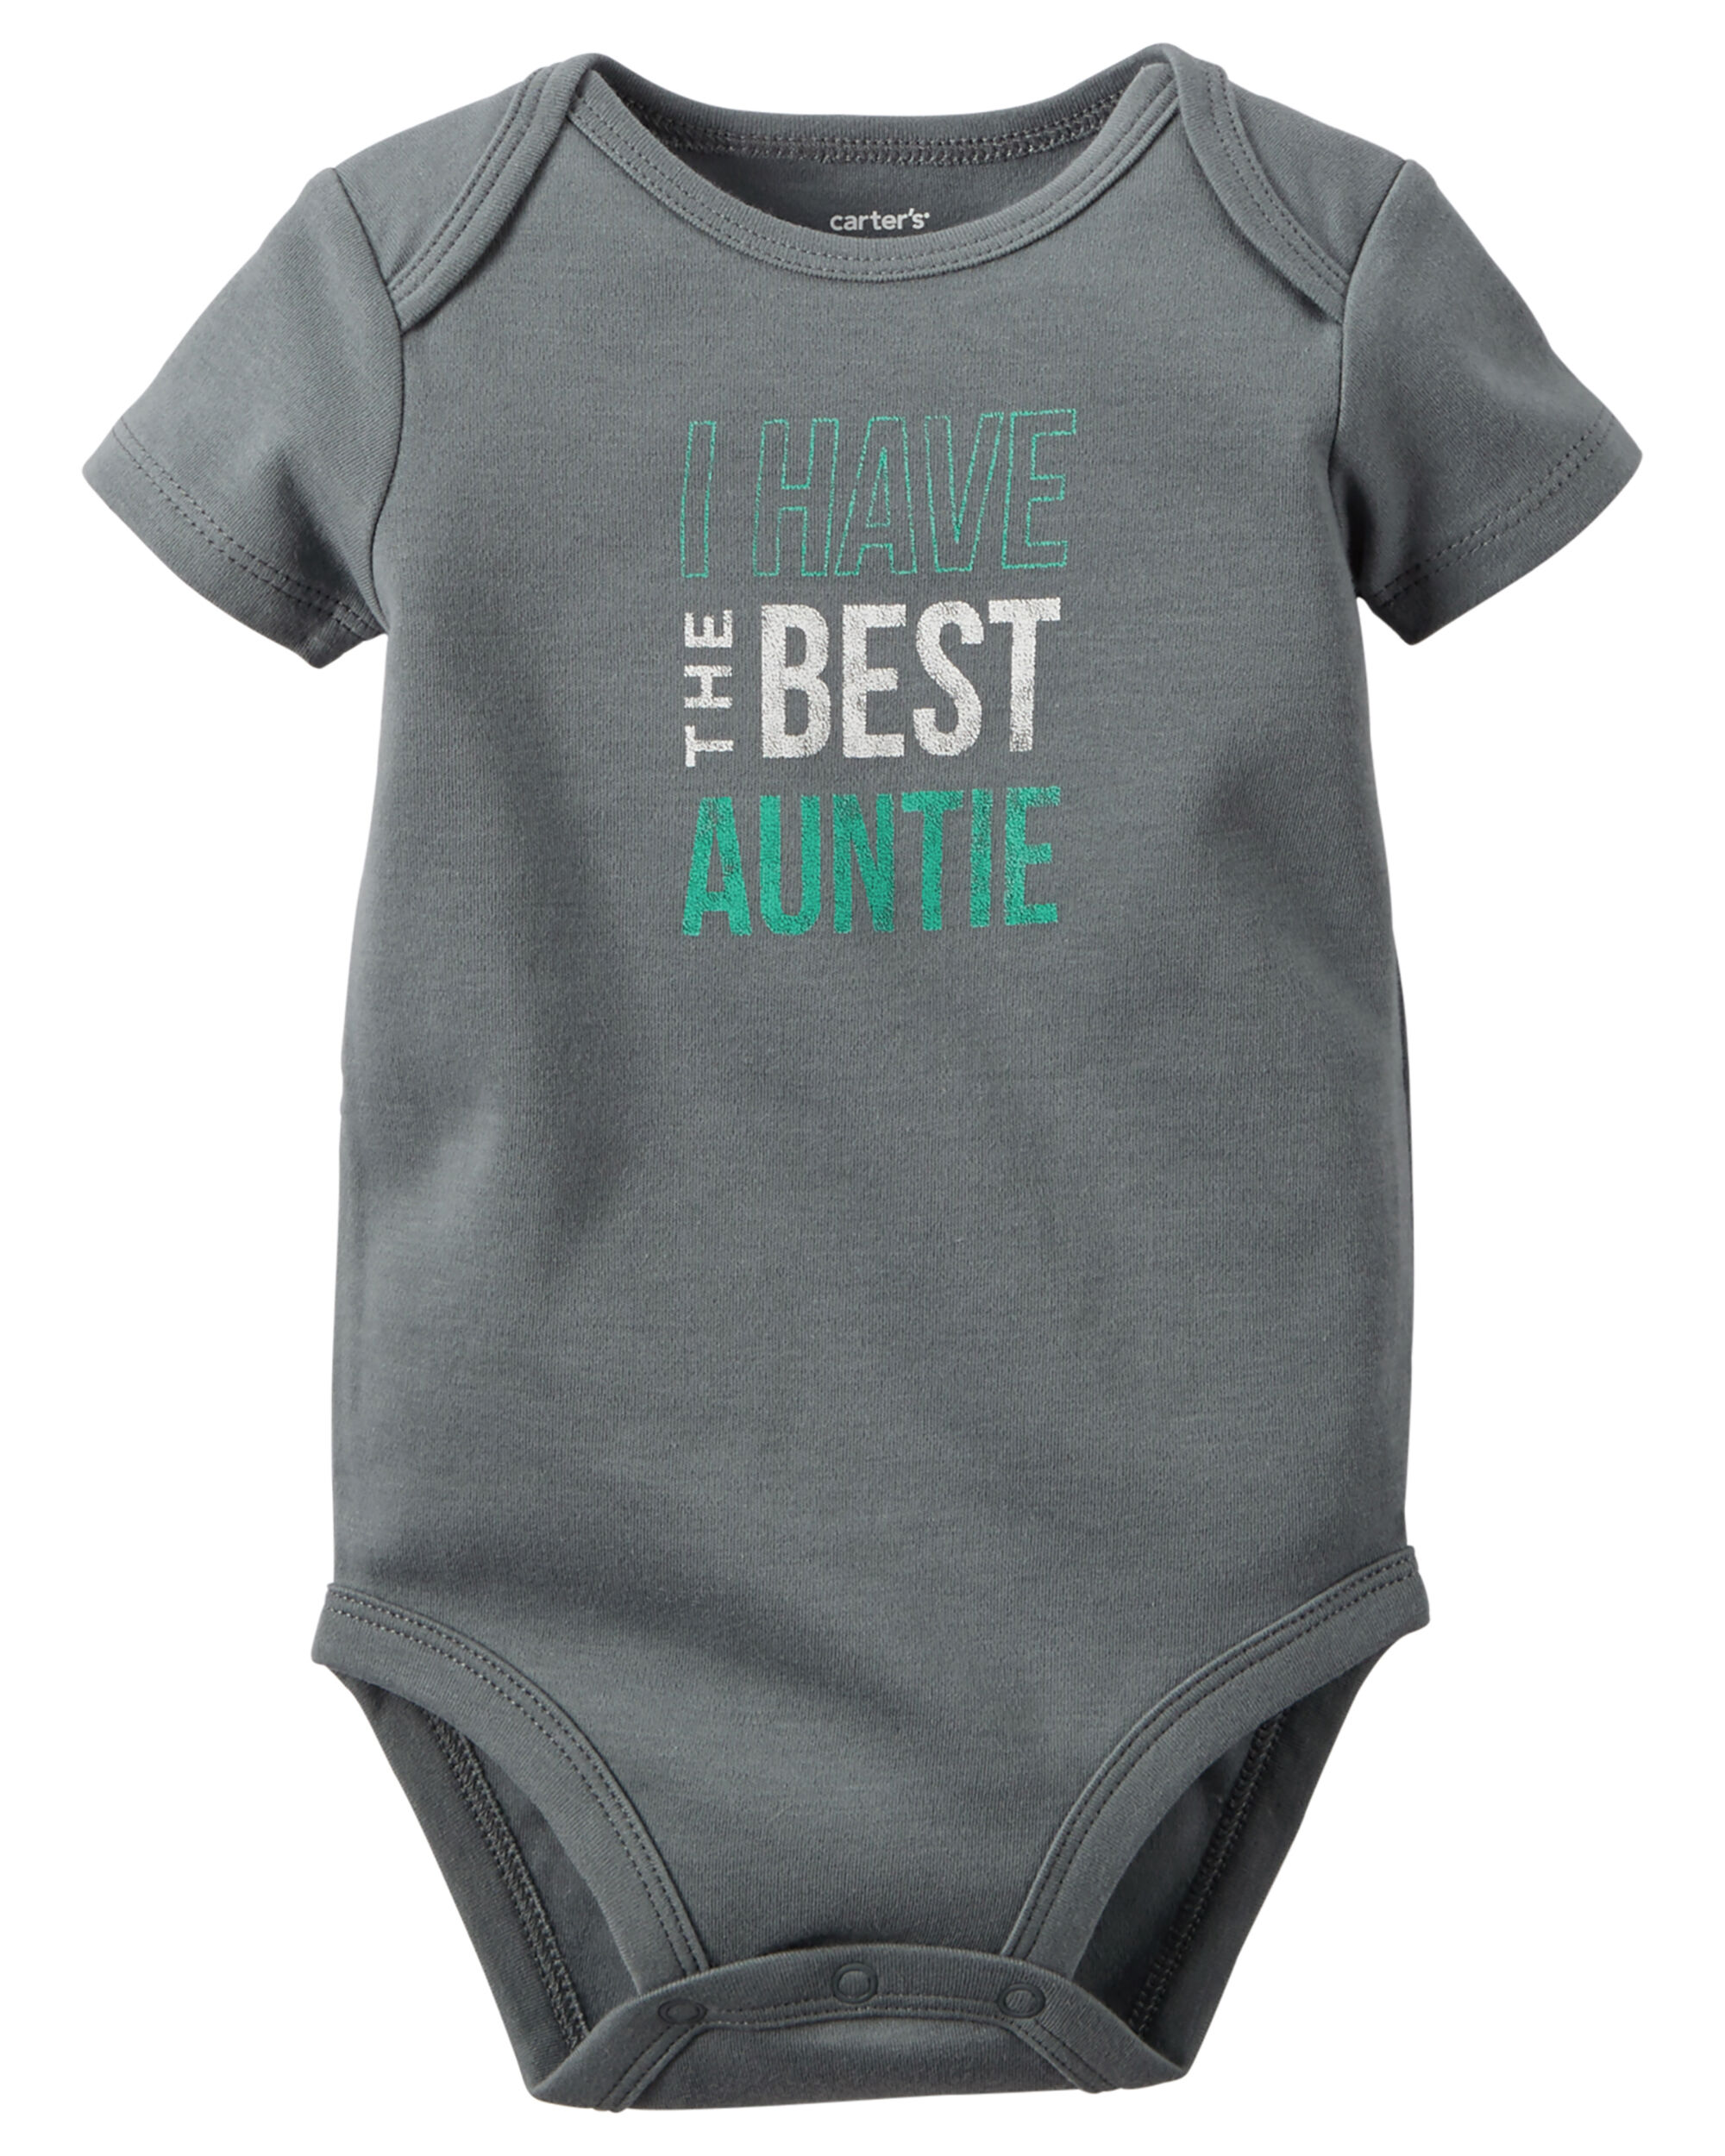 The Best Auntie Bodysuit